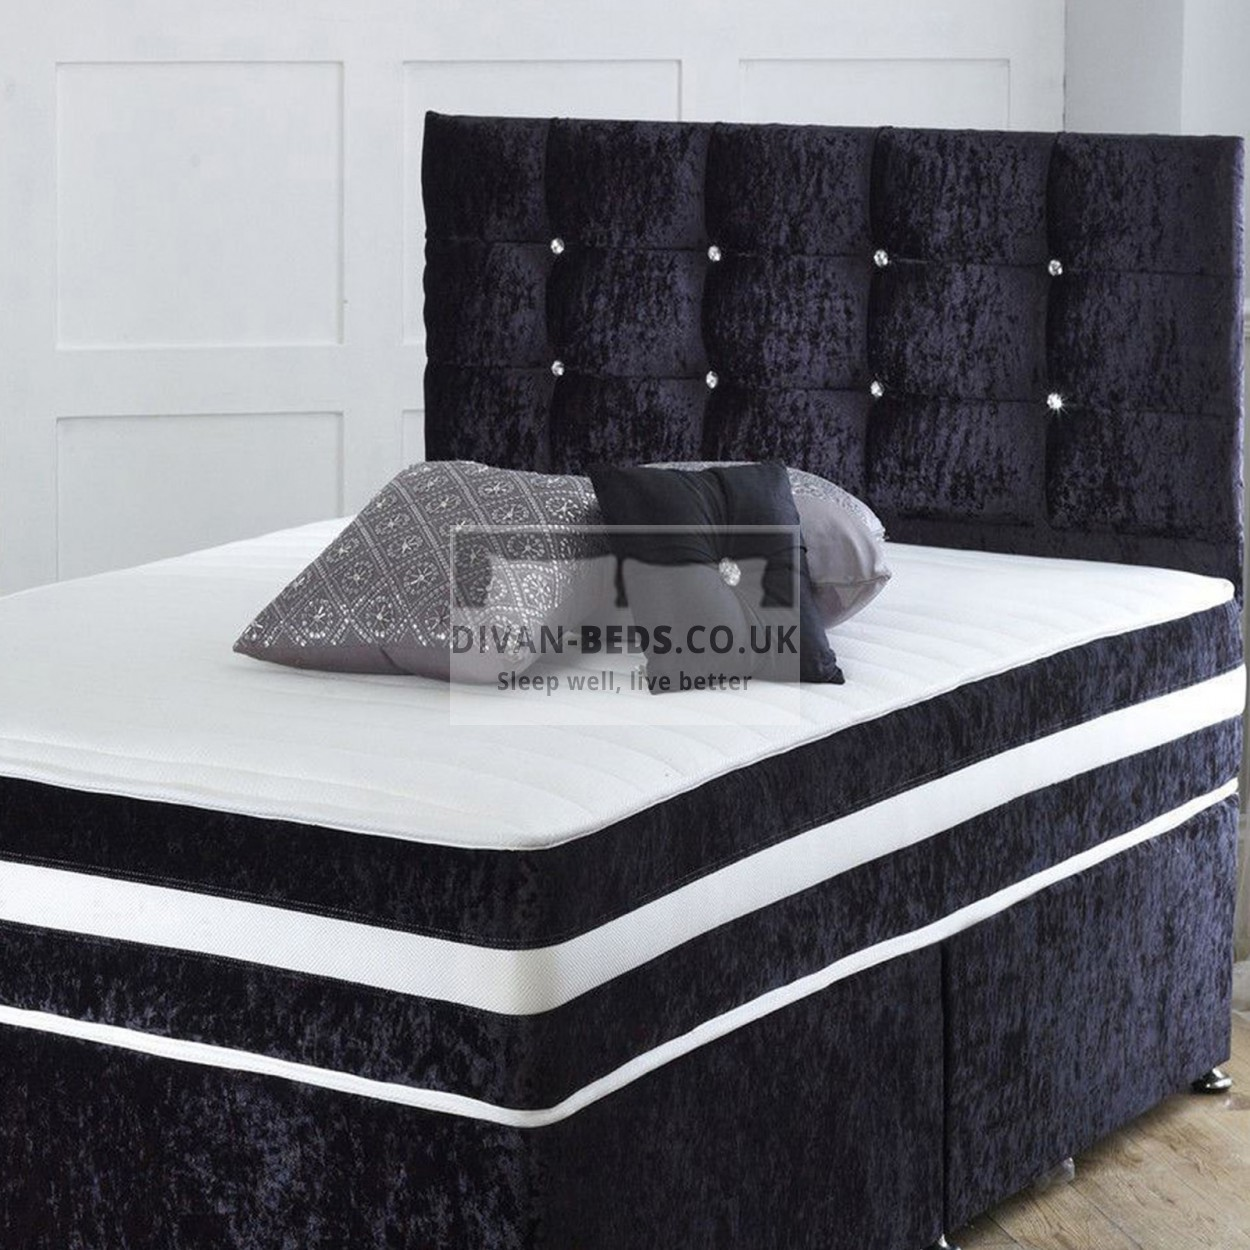 Richard Crushed Velvet Divan Bed With Orthopaedic Spring Mattress Guaranteed Cheapest Free